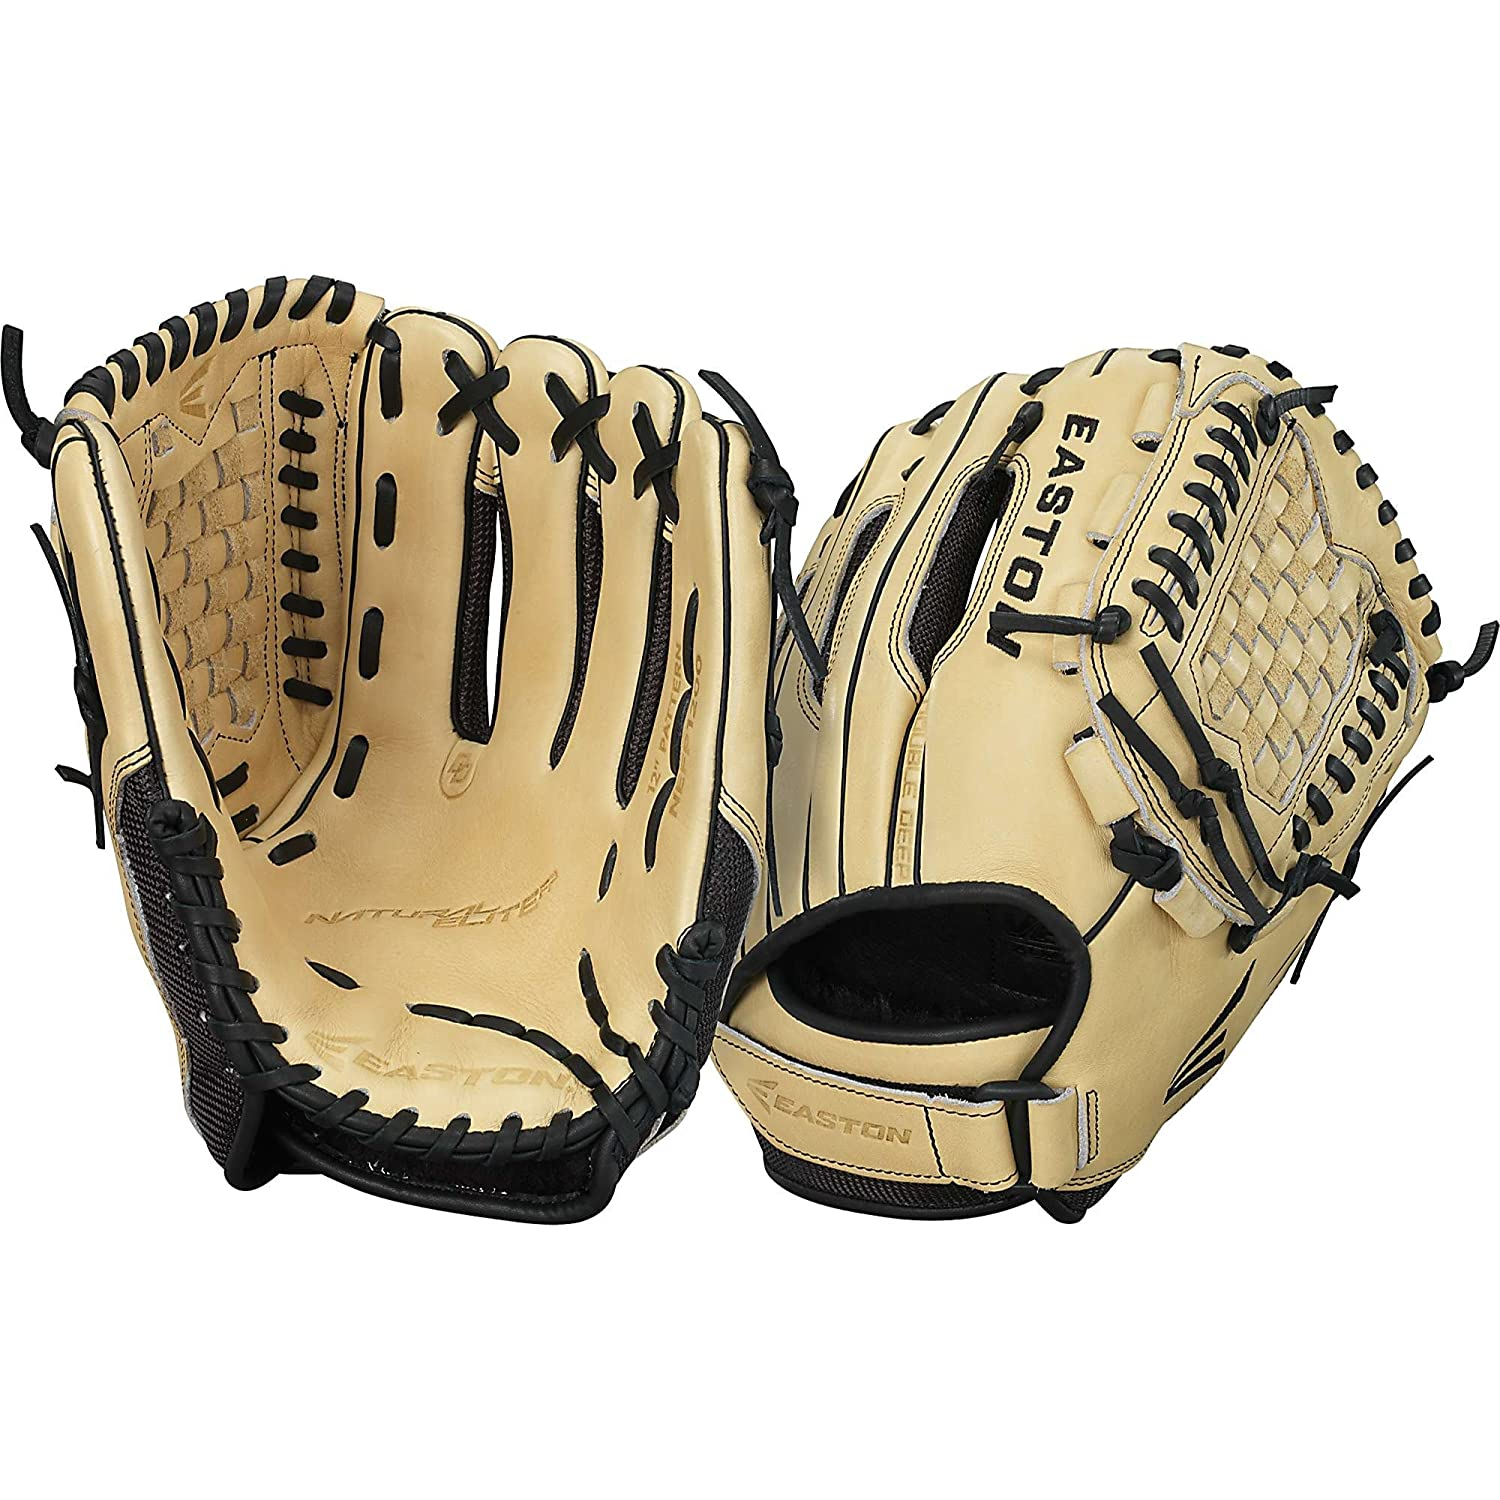 Easton NEFP1200 Left Hand Throw Fastpitch Softball Glove, 12-Inch